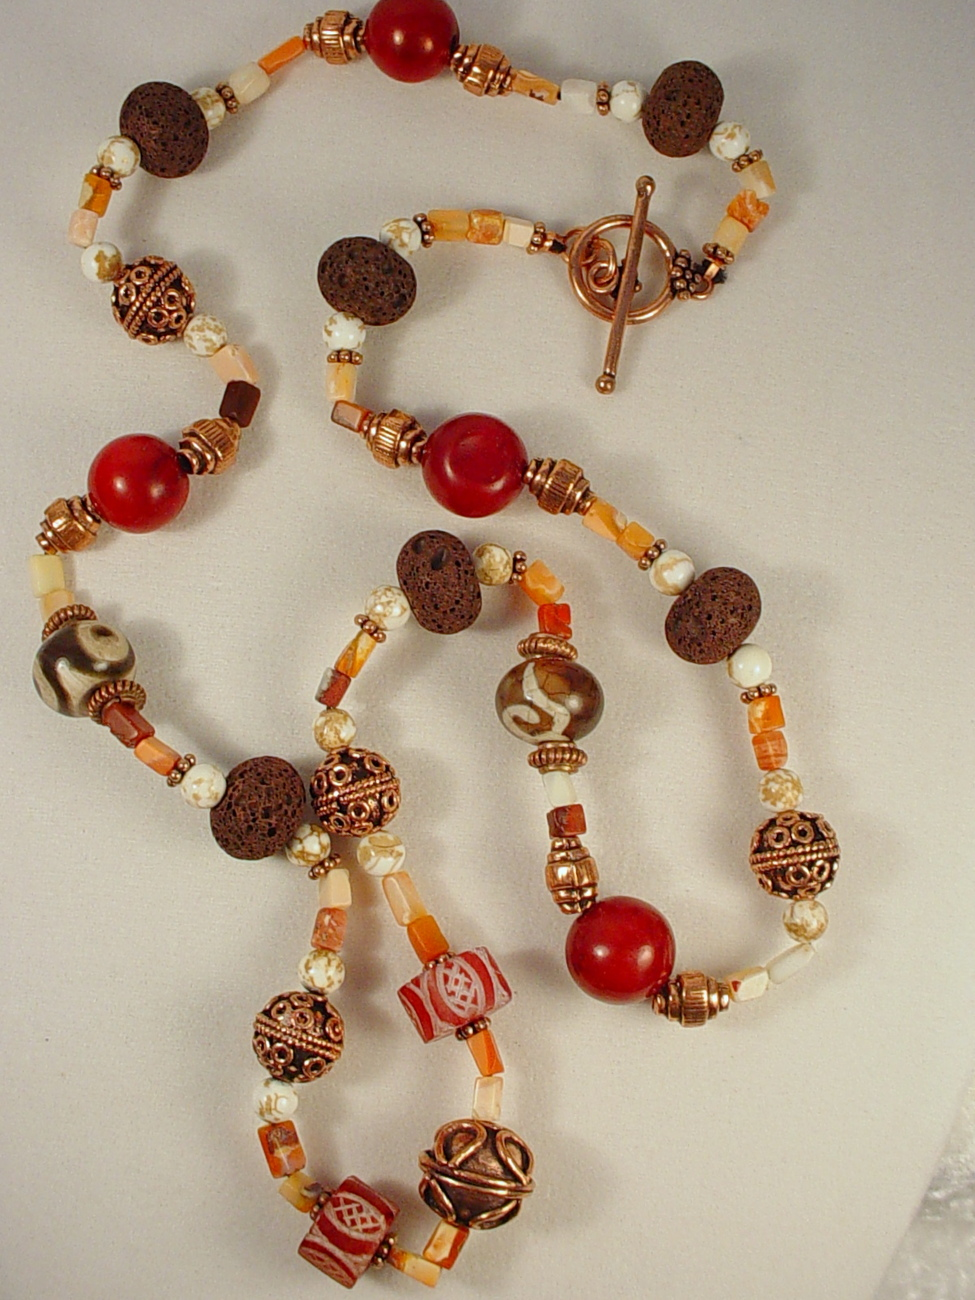 Necklace: Dzi Beads and Old Afghan Etched Carnelian Beads